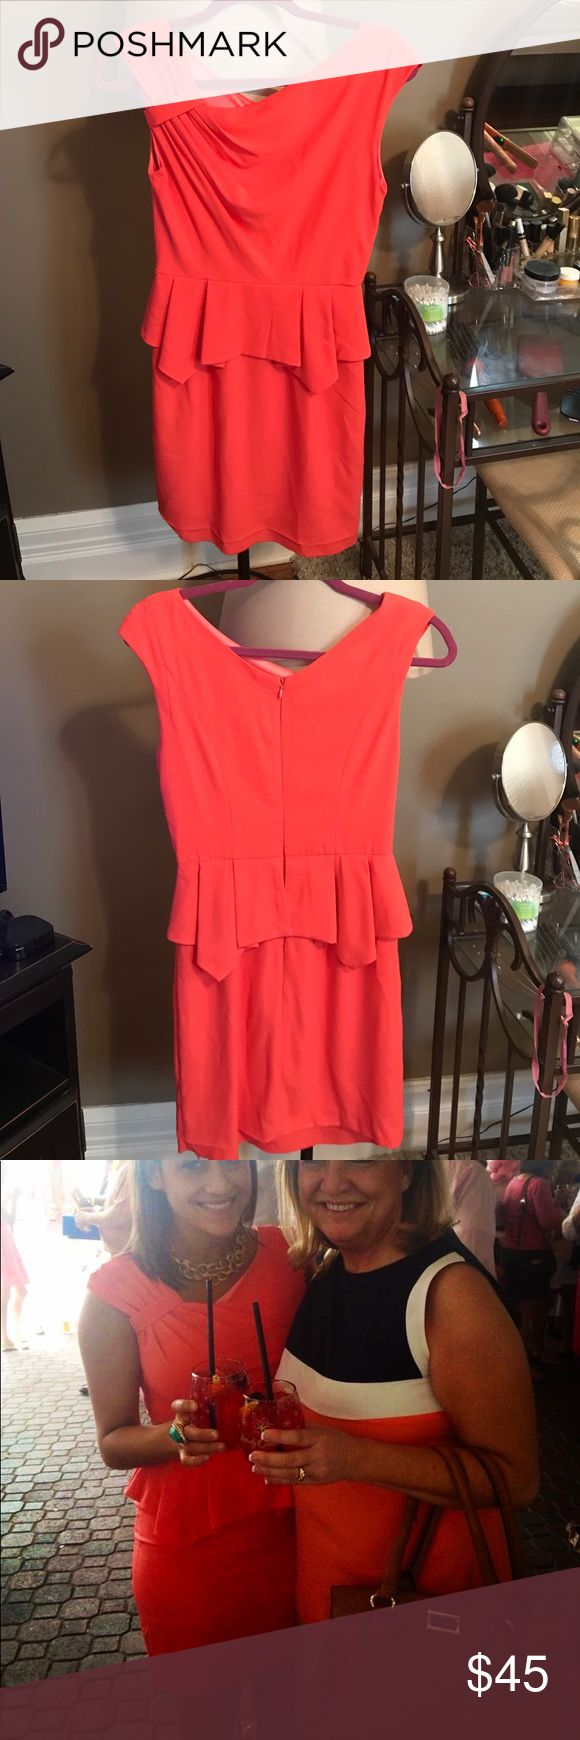 Coral cocktail dress size small Coral cocktail dress size small with peplum waist Minuet Petite Dresses Mini